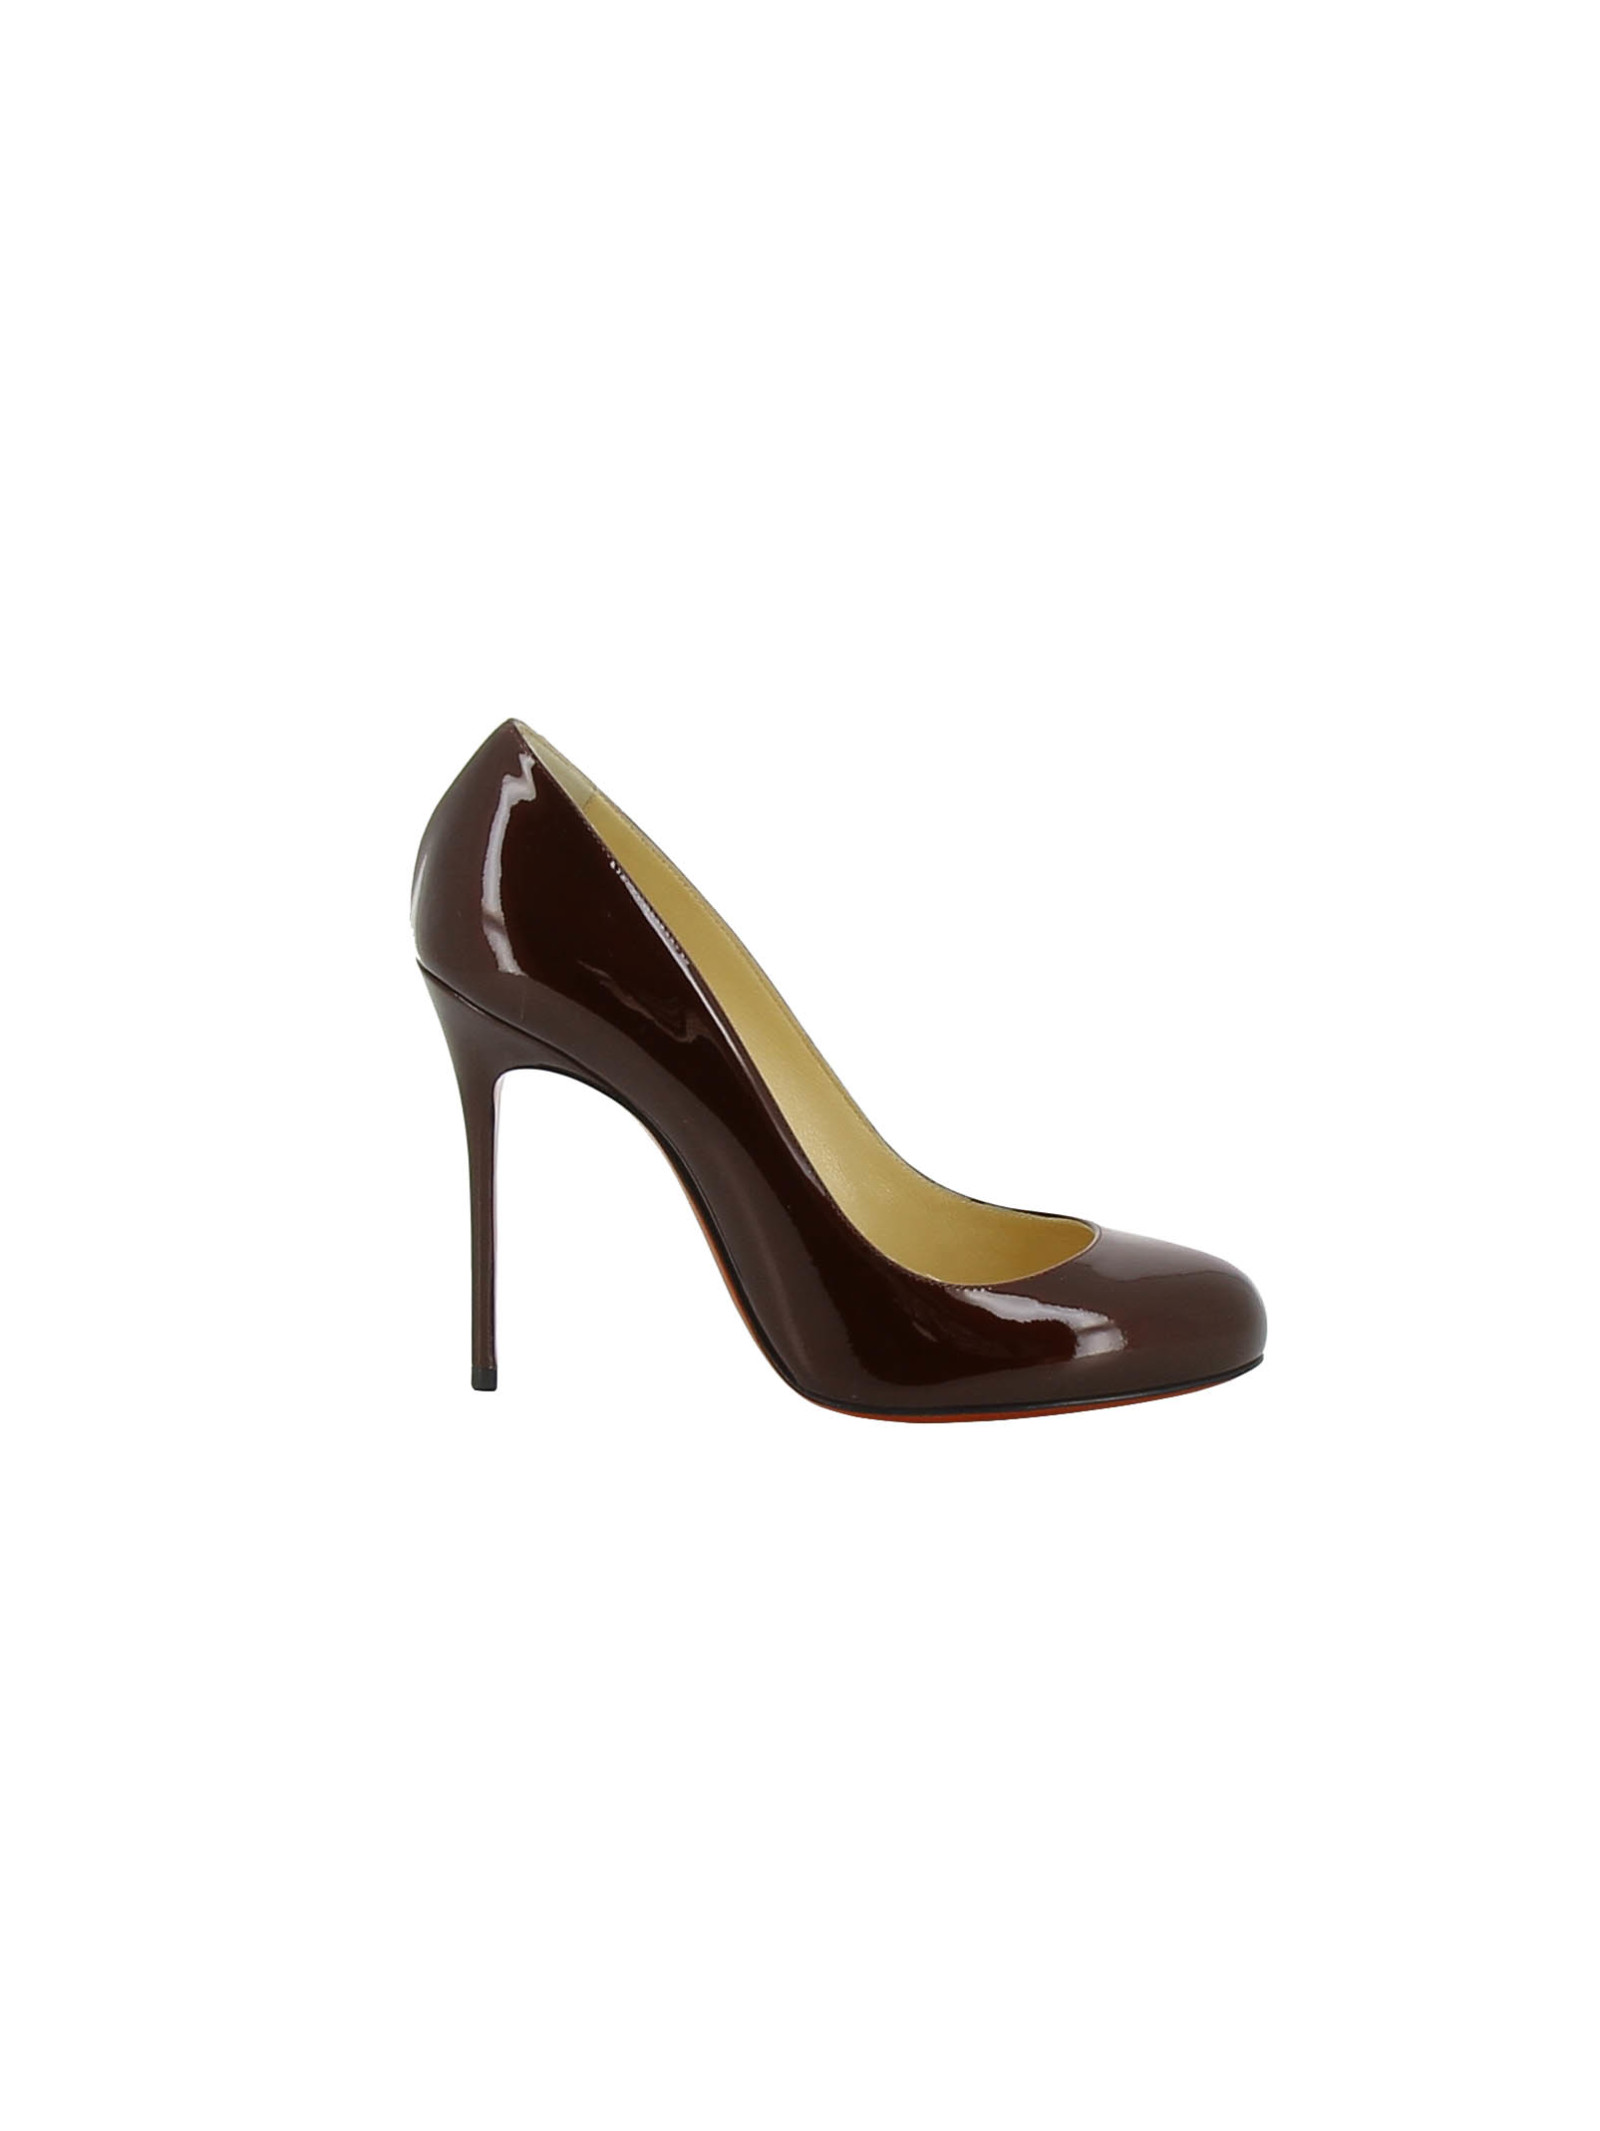 christian louboutin female christian louboutin fifi pumps